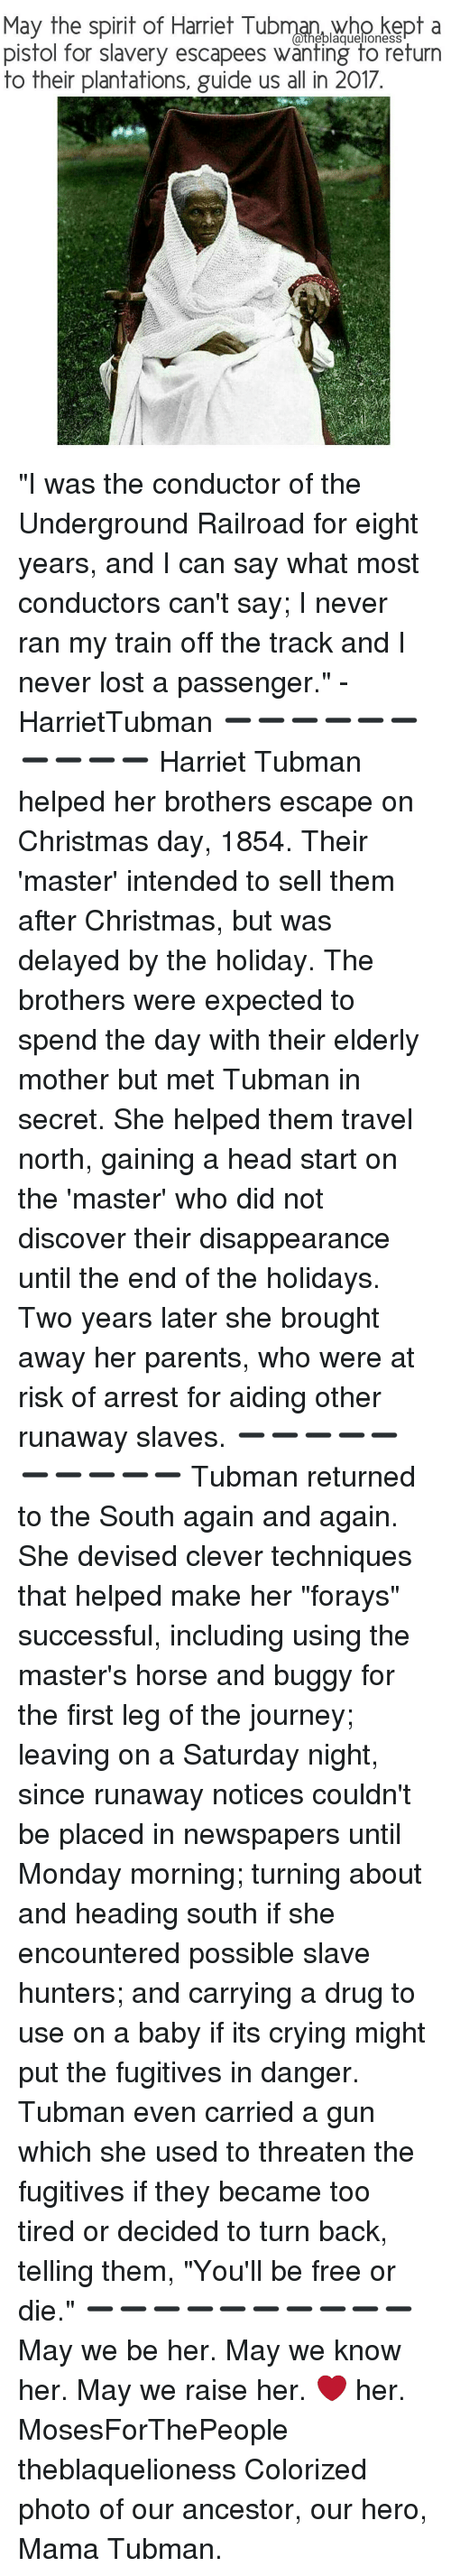 """head start: May the spirit of Harriet Tubman, who kept a  a the blaguellOneSS  pistol for slavery escapees wanting to return  to their plantations, guide us all in 2017 """"I was the conductor of the Underground Railroad for eight years, and I can say what most conductors can't say; I never ran my train off the track and I never lost a passenger."""" - HarrietTubman ➖➖➖➖➖➖➖➖➖➖ Harriet Tubman helped her brothers escape on Christmas day, 1854. Their 'master' intended to sell them after Christmas, but was delayed by the holiday. The brothers were expected to spend the day with their elderly mother but met Tubman in secret. She helped them travel north, gaining a head start on the 'master' who did not discover their disappearance until the end of the holidays. Two years later she brought away her parents, who were at risk of arrest for aiding other runaway slaves. ➖➖➖➖➖➖➖➖➖➖ Tubman returned to the South again and again. She devised clever techniques that helped make her """"forays"""" successful, including using the master's horse and buggy for the first leg of the journey; leaving on a Saturday night, since runaway notices couldn't be placed in newspapers until Monday morning; turning about and heading south if she encountered possible slave hunters; and carrying a drug to use on a baby if its crying might put the fugitives in danger. Tubman even carried a gun which she used to threaten the fugitives if they became too tired or decided to turn back, telling them, """"You'll be free or die."""" ➖➖➖➖➖➖➖➖➖➖ May we be her. May we know her. May we raise her. ❤ her. MosesForThePeople theblaquelioness Colorized photo of our ancestor, our hero, Mama Tubman."""